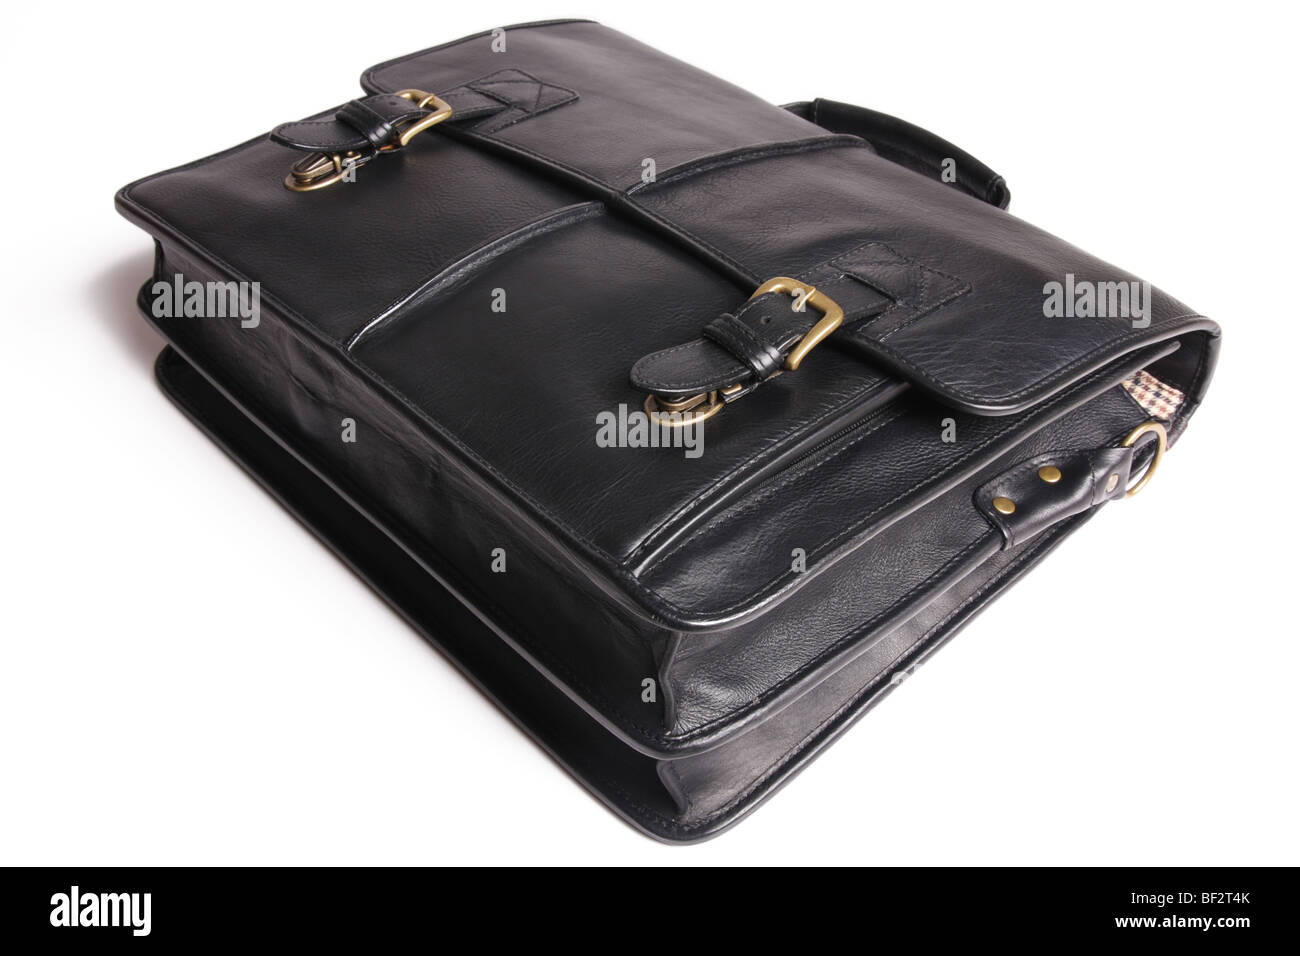 Brown briefcase isolated on a white background. - Stock Image